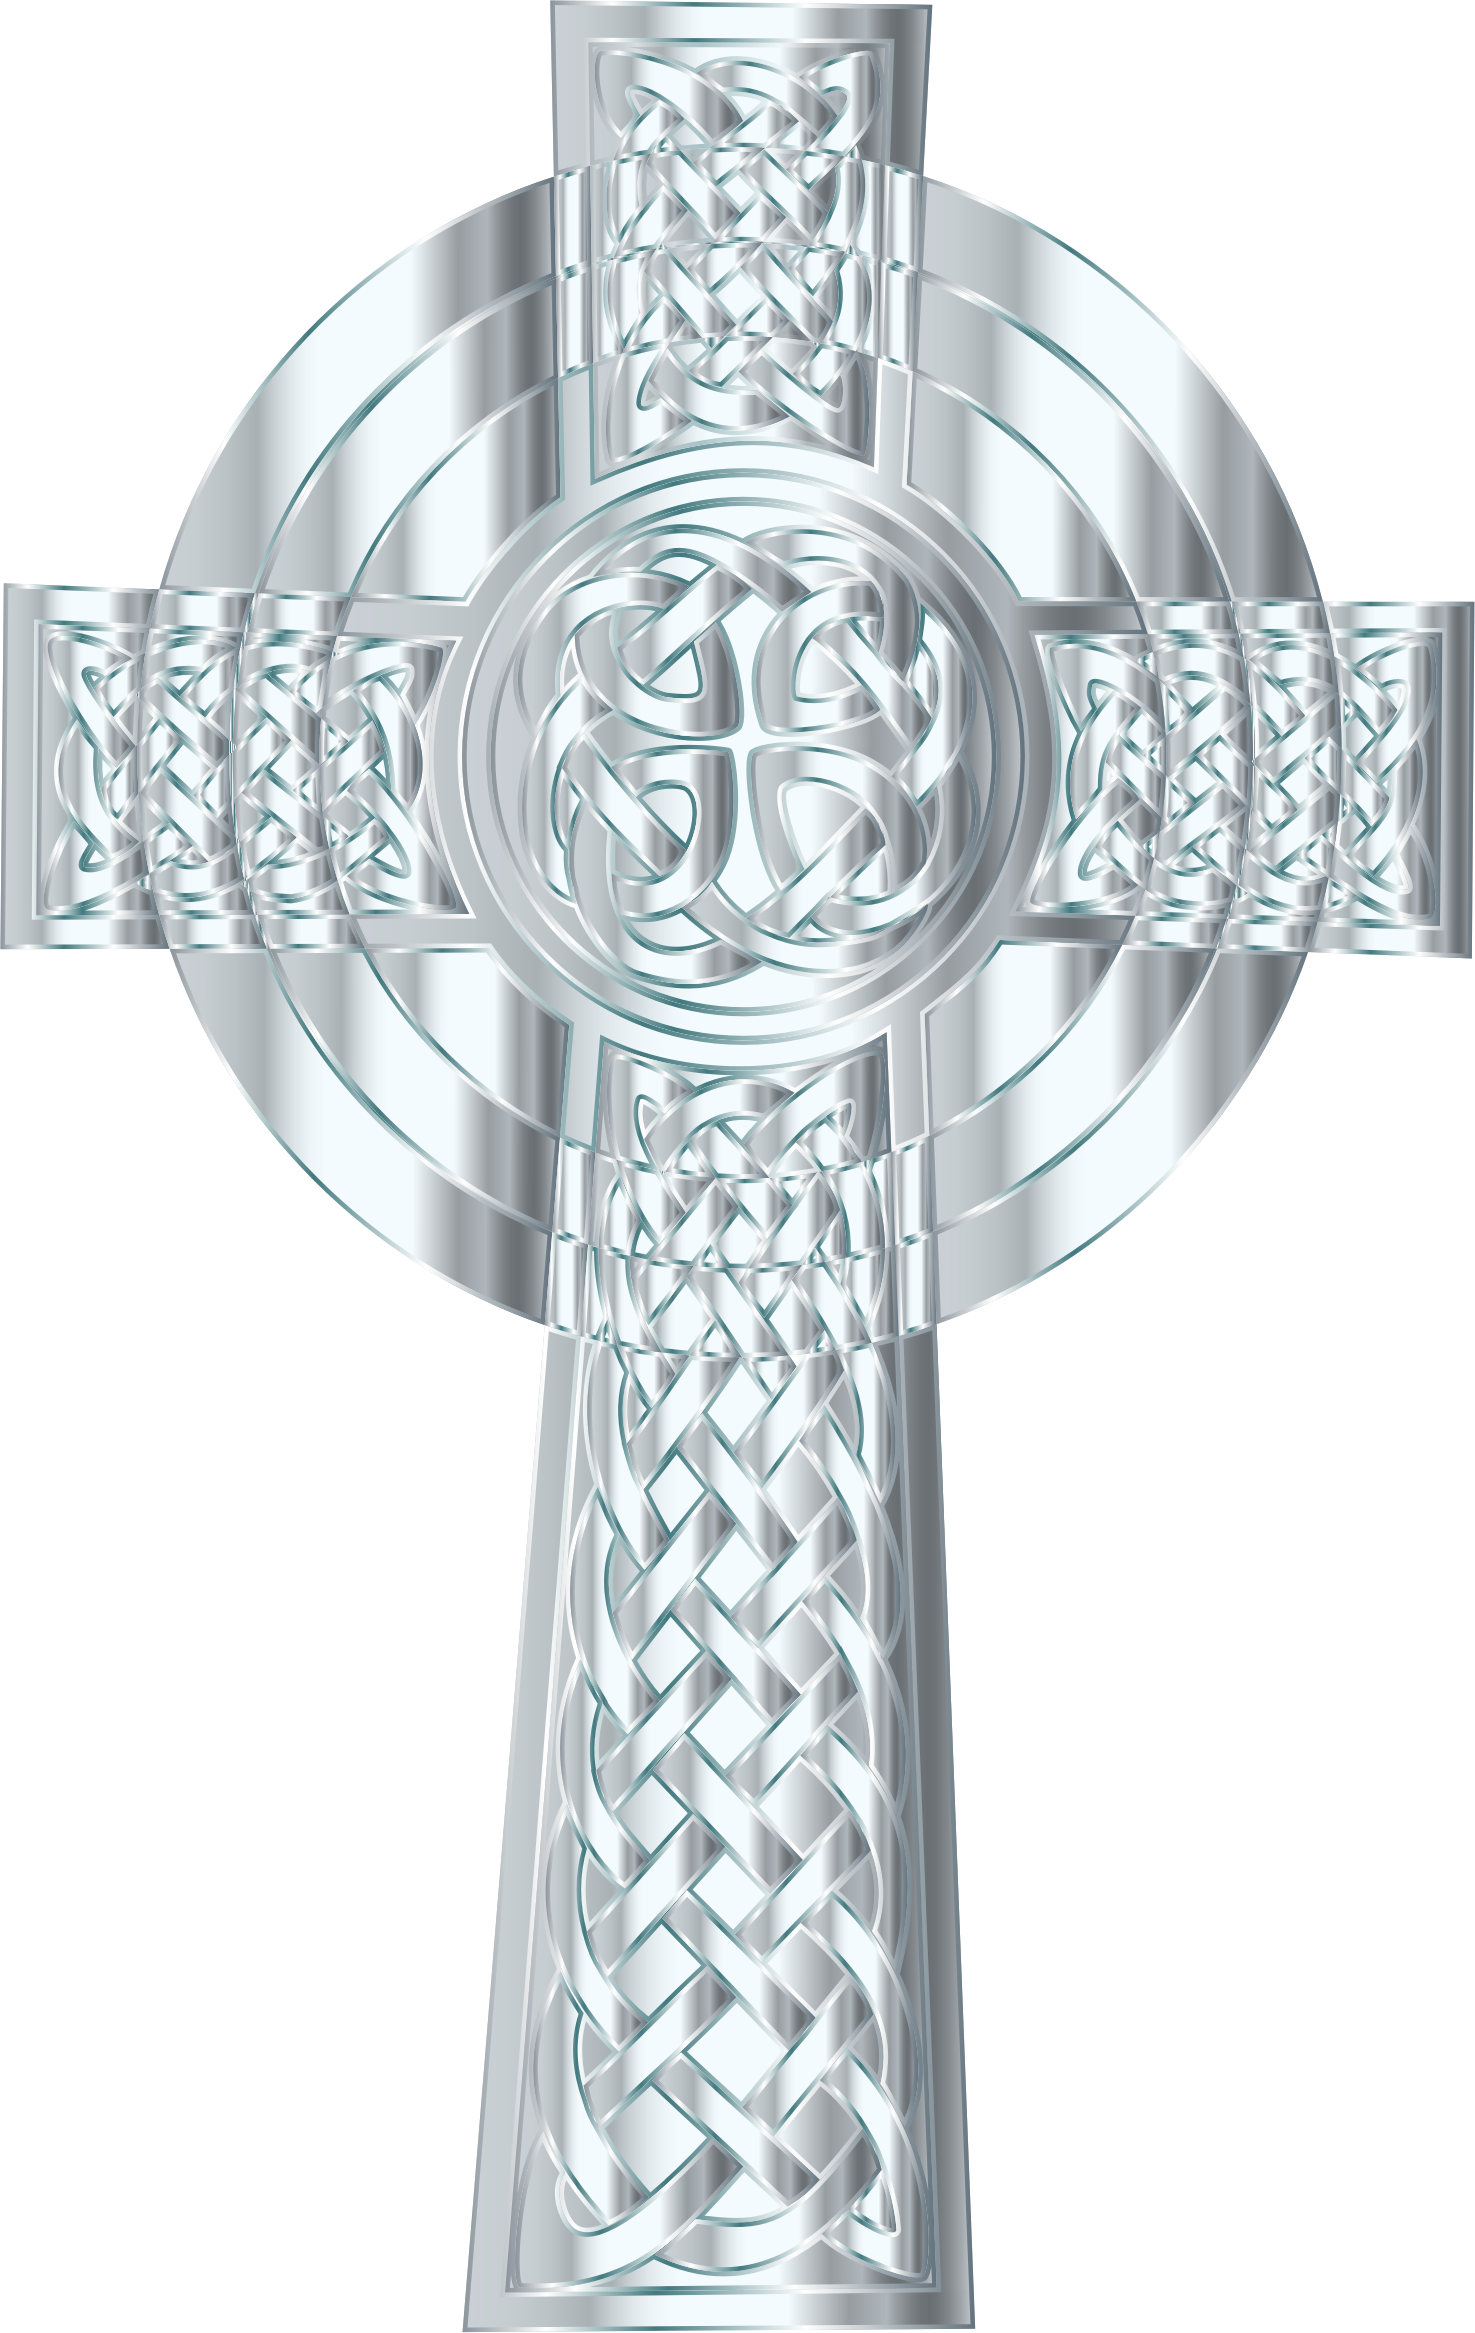 Jesus on the cross clipart images clipart freeuse library Silver Celtic Cross 3 Icons PNG - Free PNG and Icons Downloads clipart freeuse library